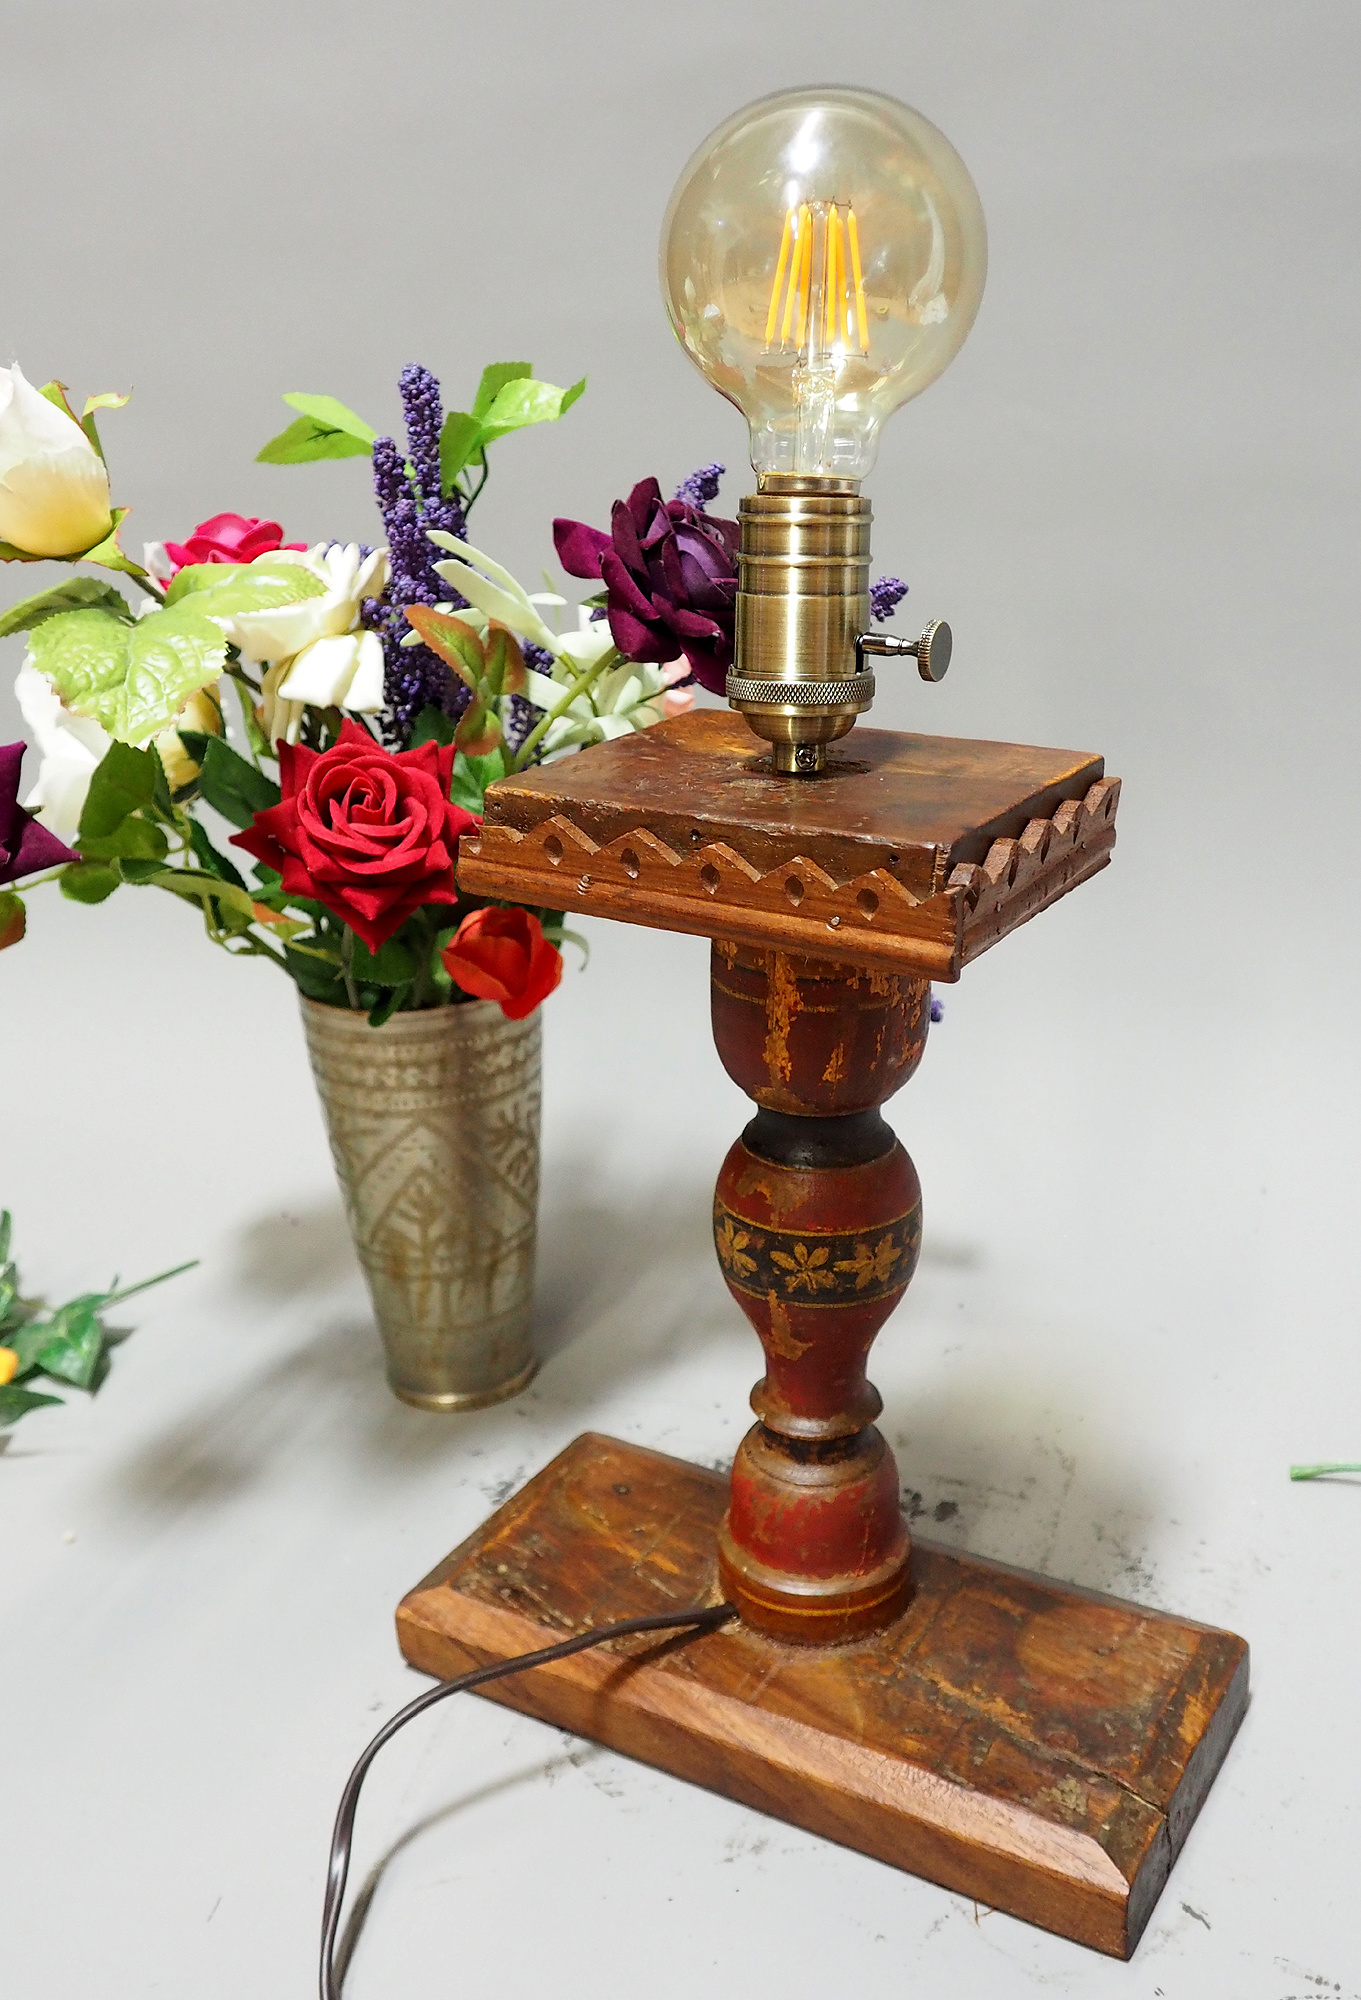 Antique handpainted stunning Vintage Lacquerware wooden Table Lamp with Vintage light fitting from Afghanistan / Pakistan No:21/2